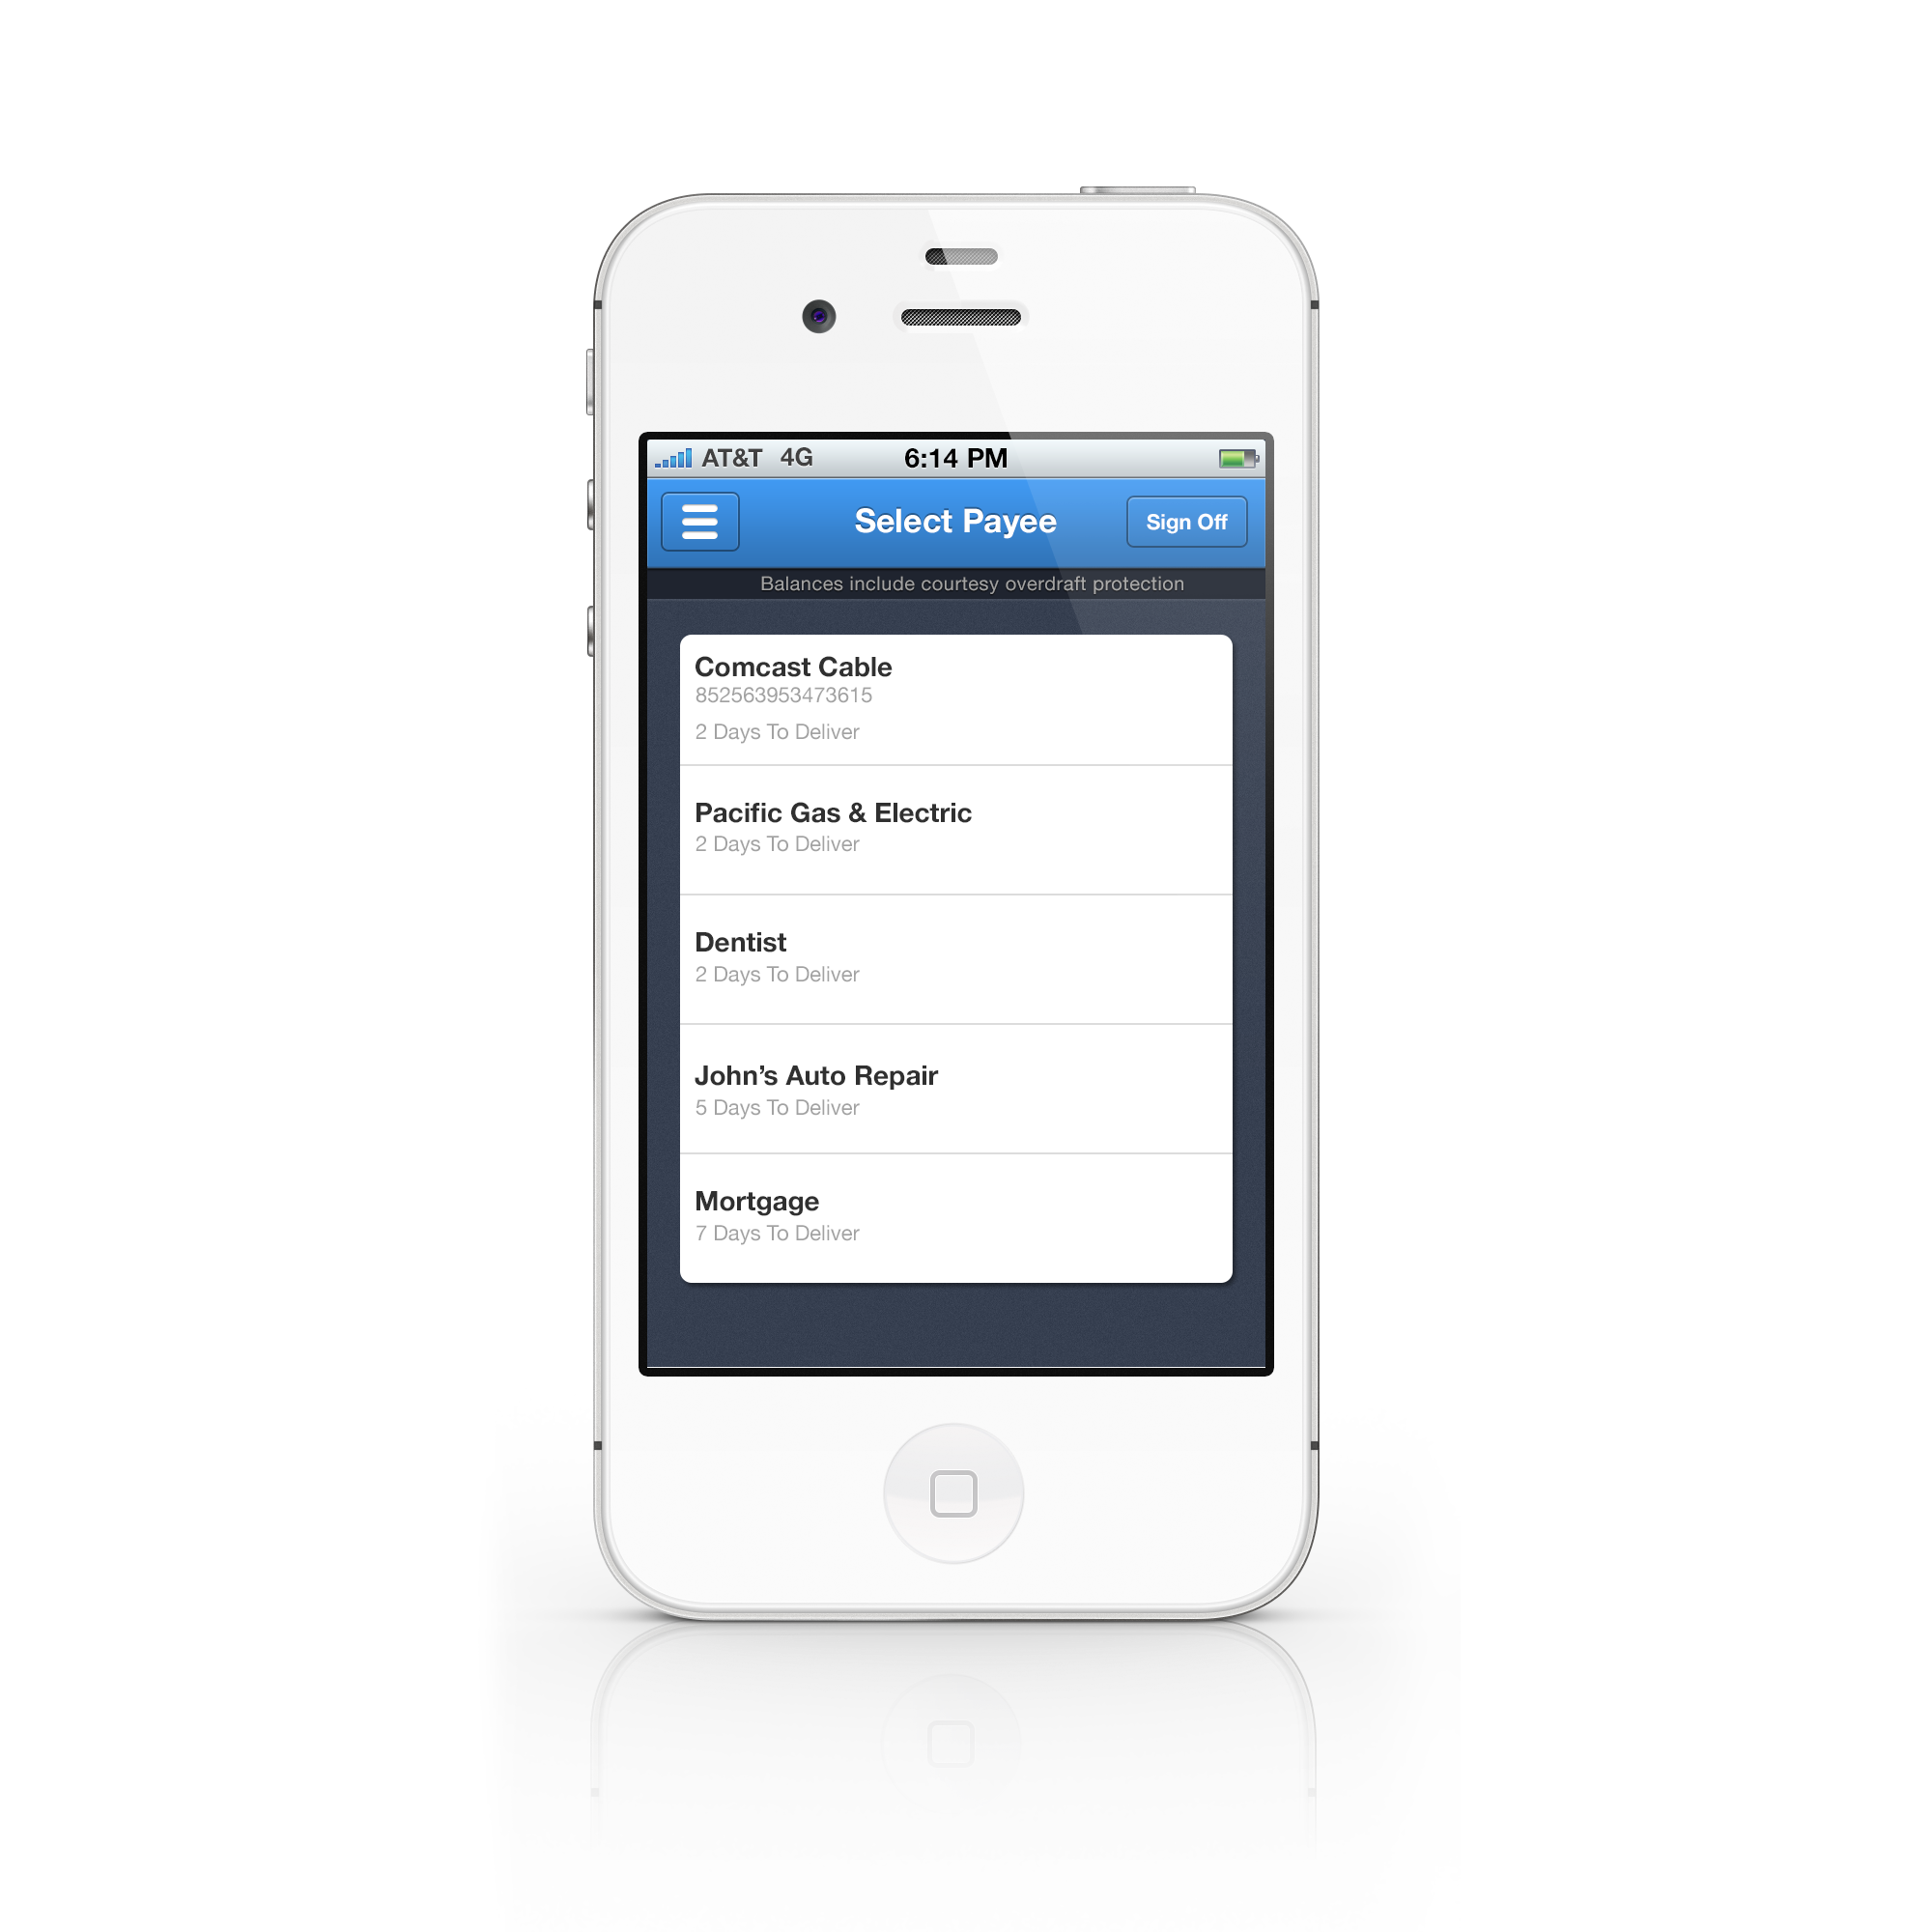 Mobile_Banking_iPhone_4_0018_Layer-Comp-19.png